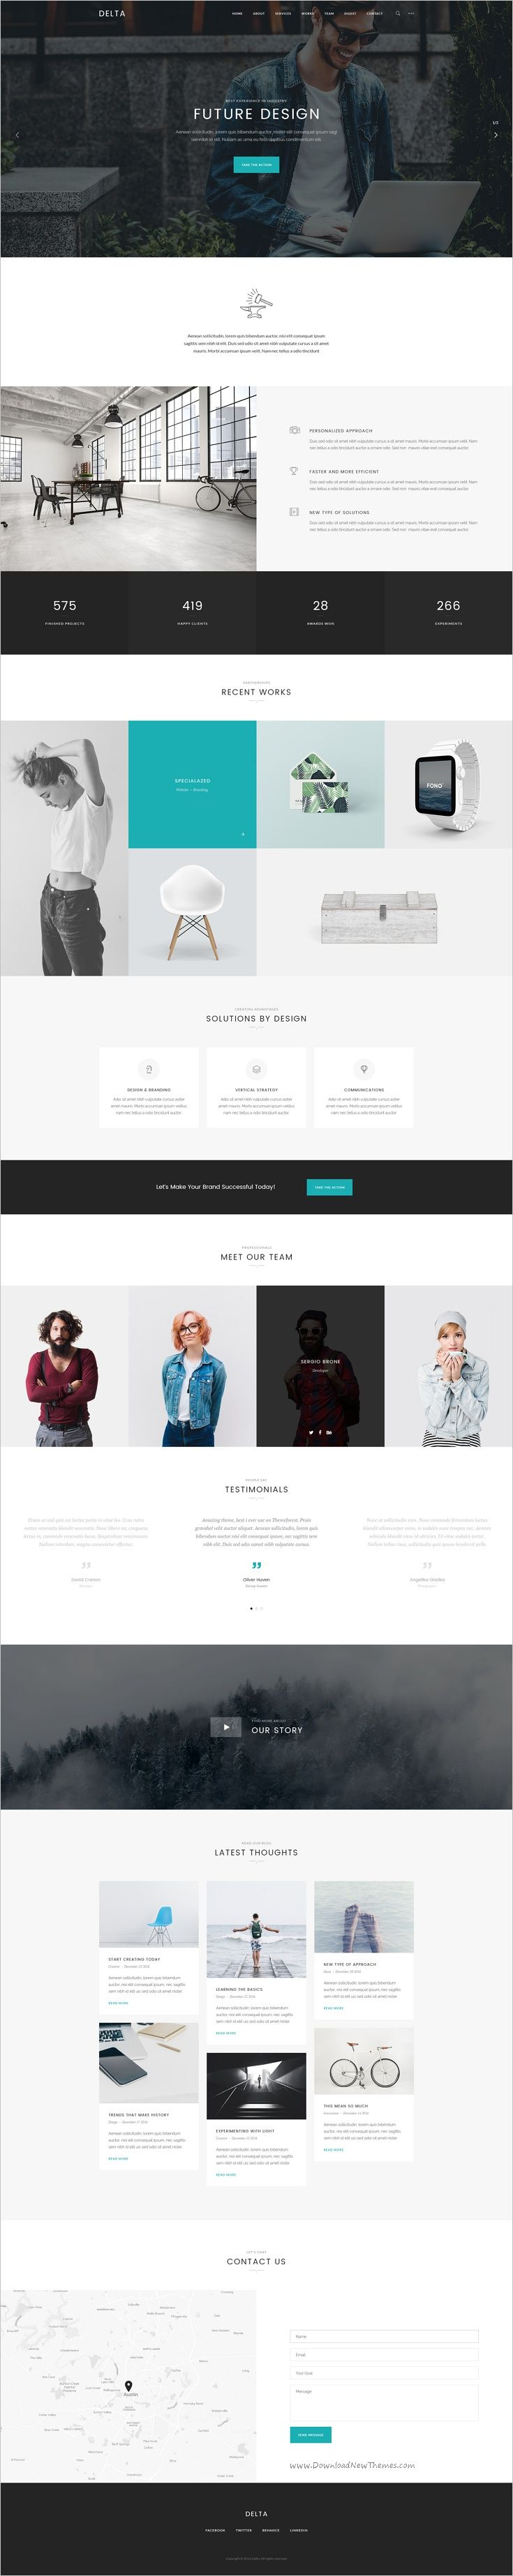 Delta is a wonderful #PSD template for #onepage #business websites download now➩ https://themeforest.net/item/delta-onepage-psd-template/19220310?ref=Datasata